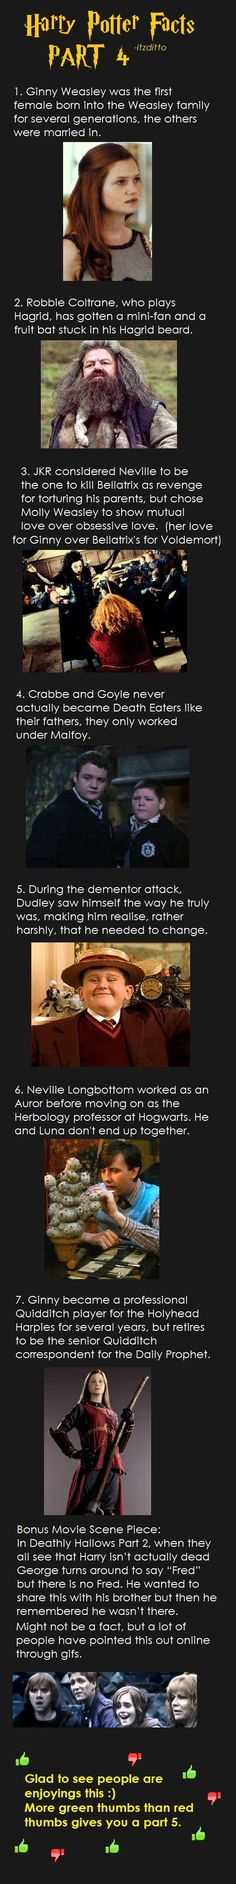 Harry Potter facts part 4